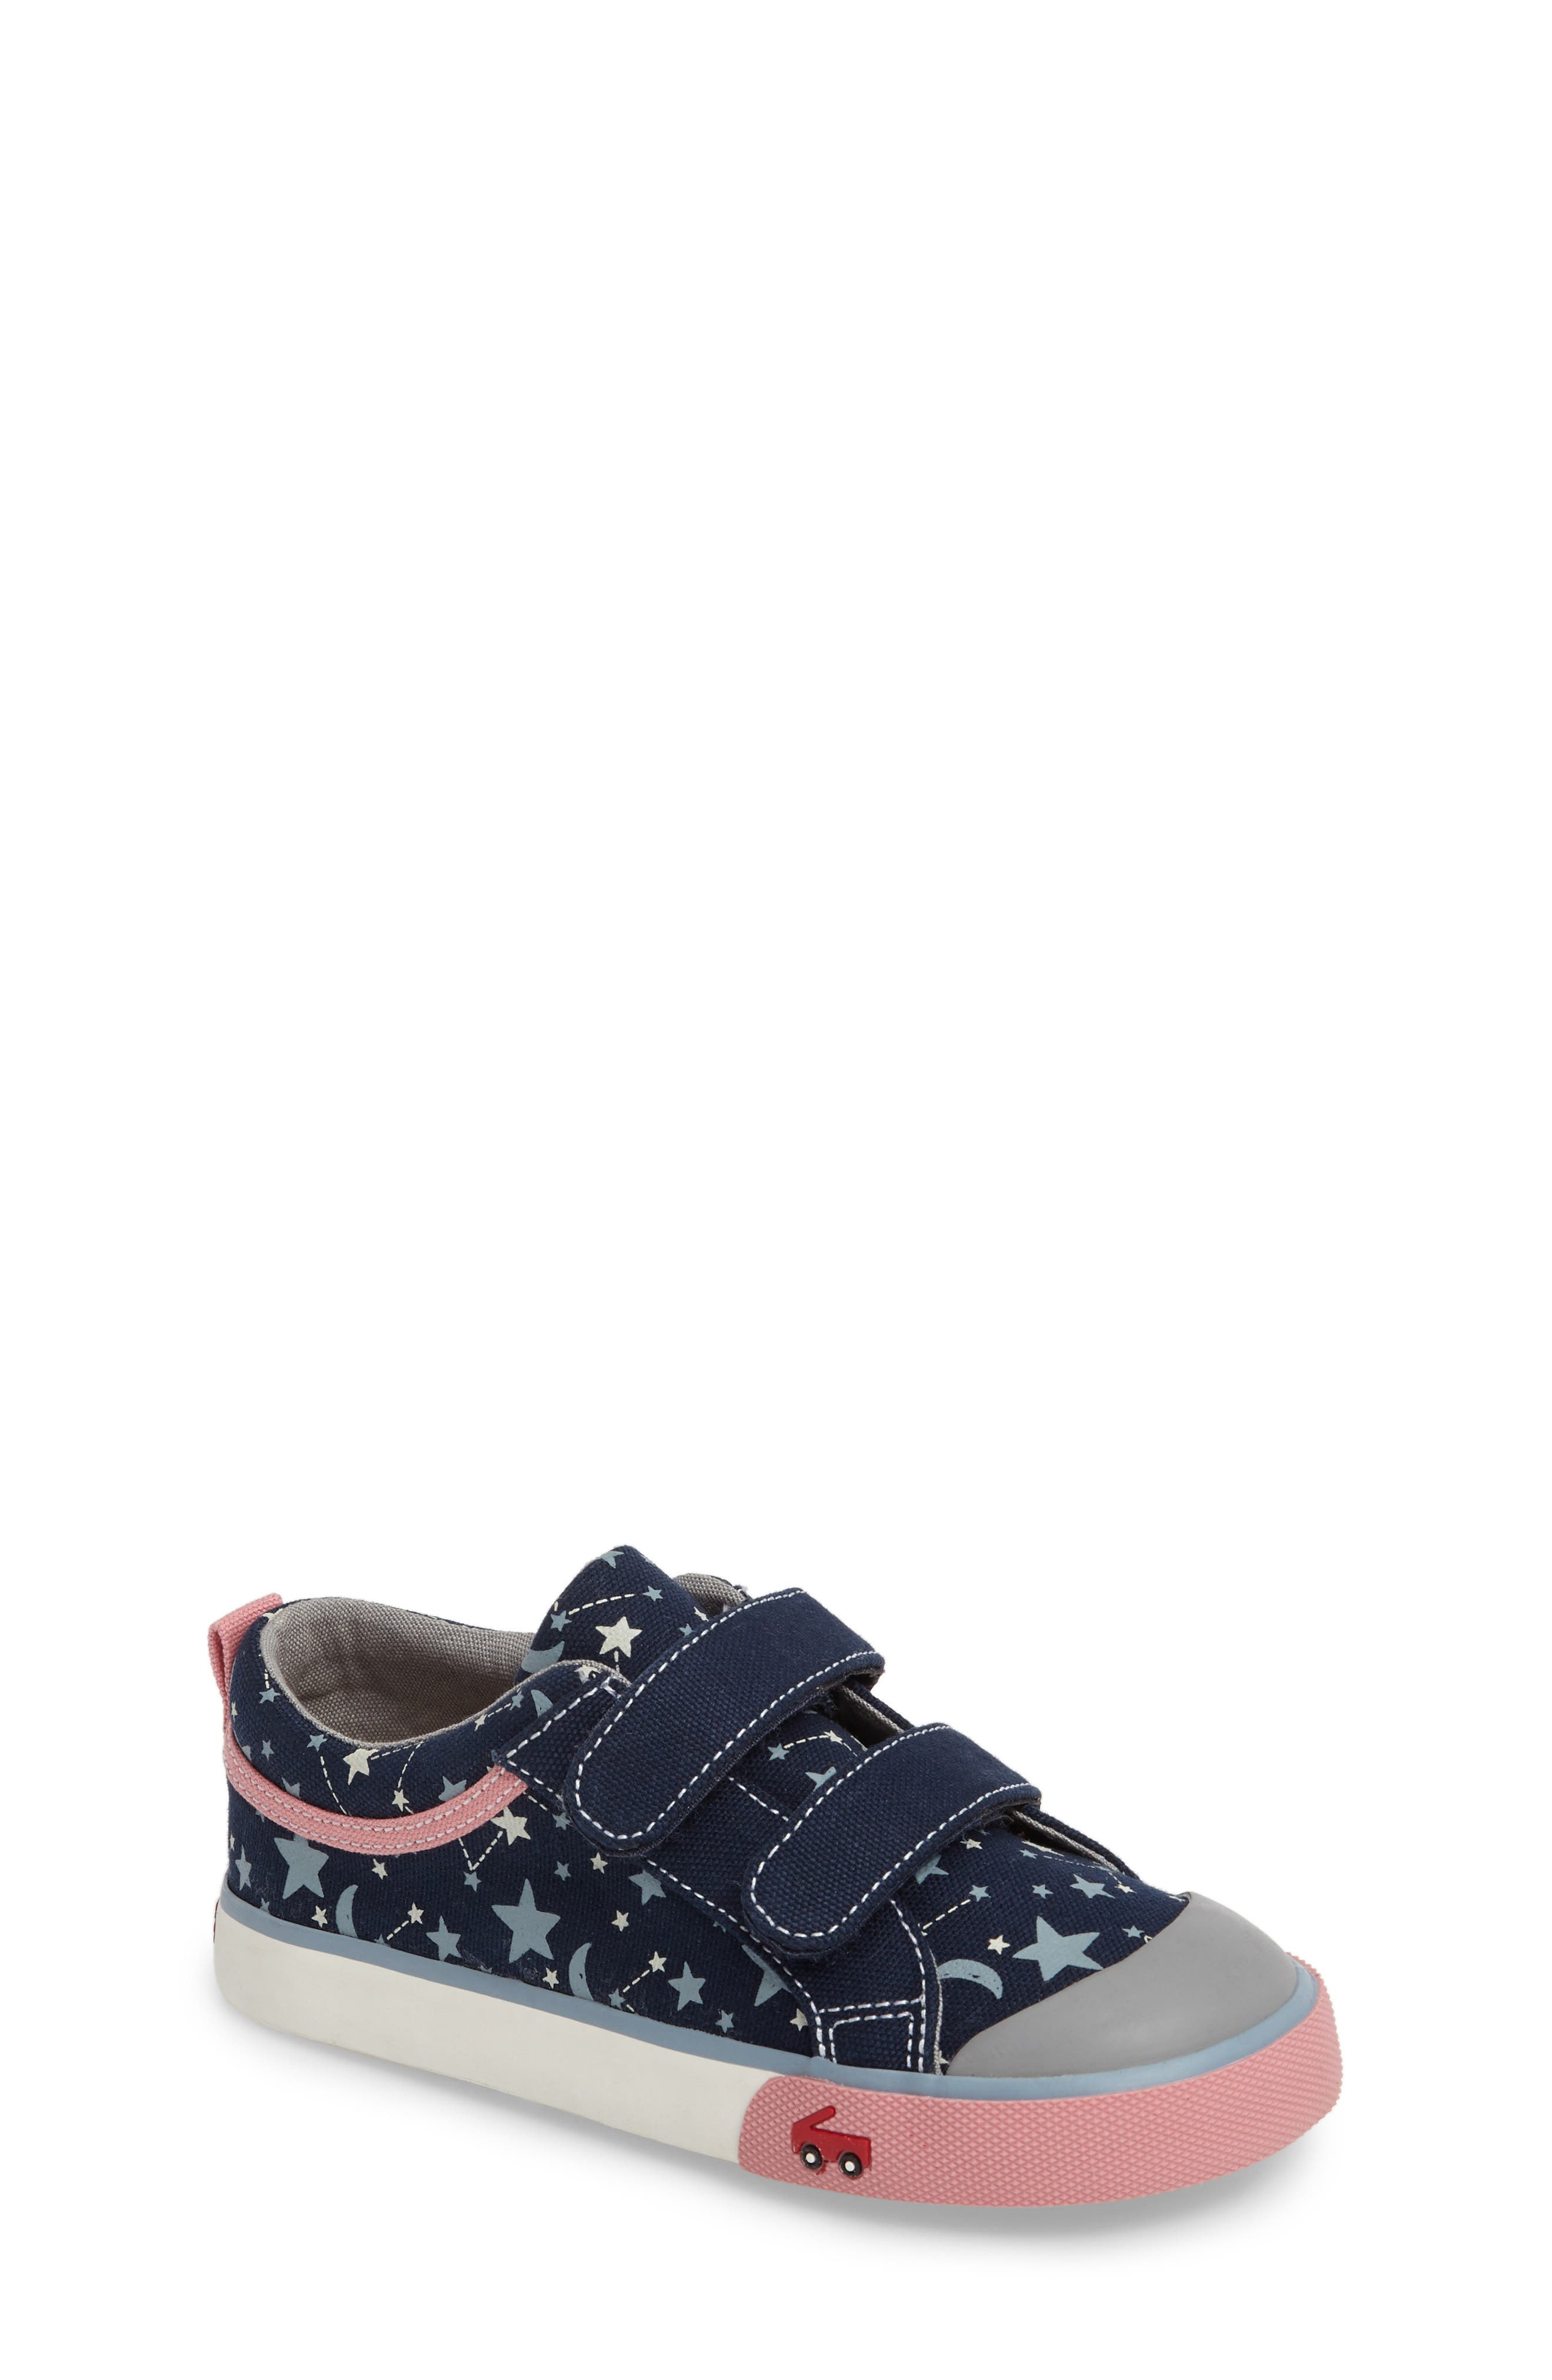 Alternate Image 1 Selected - See Kai Run Robyne Sneaker (Baby, Walker & Toddler)